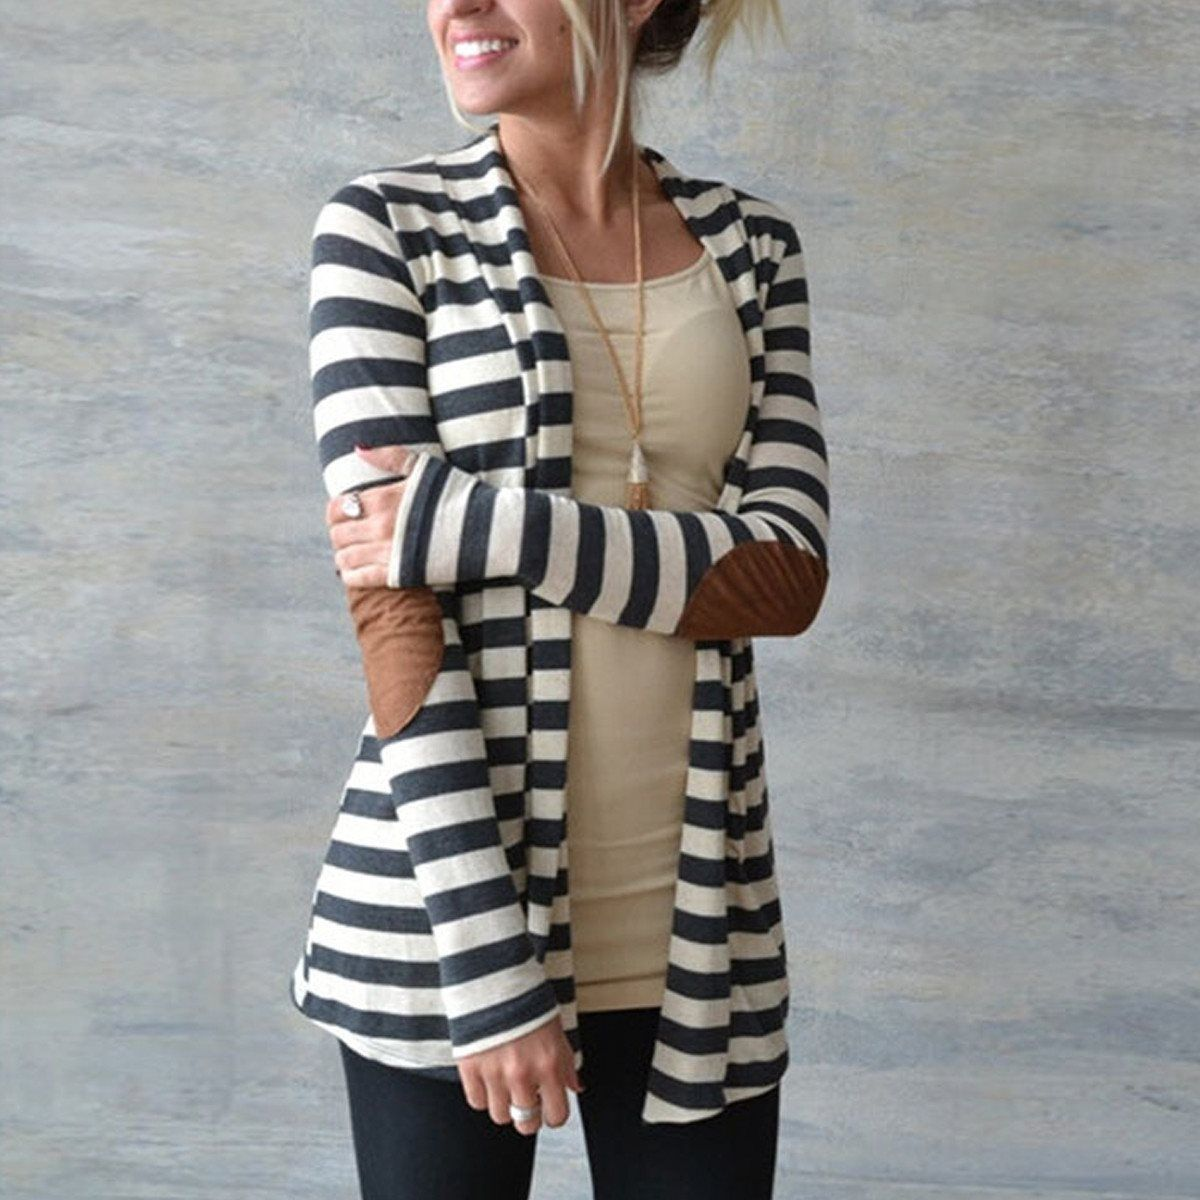 New Fashion 2018 Autumn Outerwear Women Long Sleeve Striped Printed Cardigan Casual Elbow Patchwork Knitted Sweater Plus Size